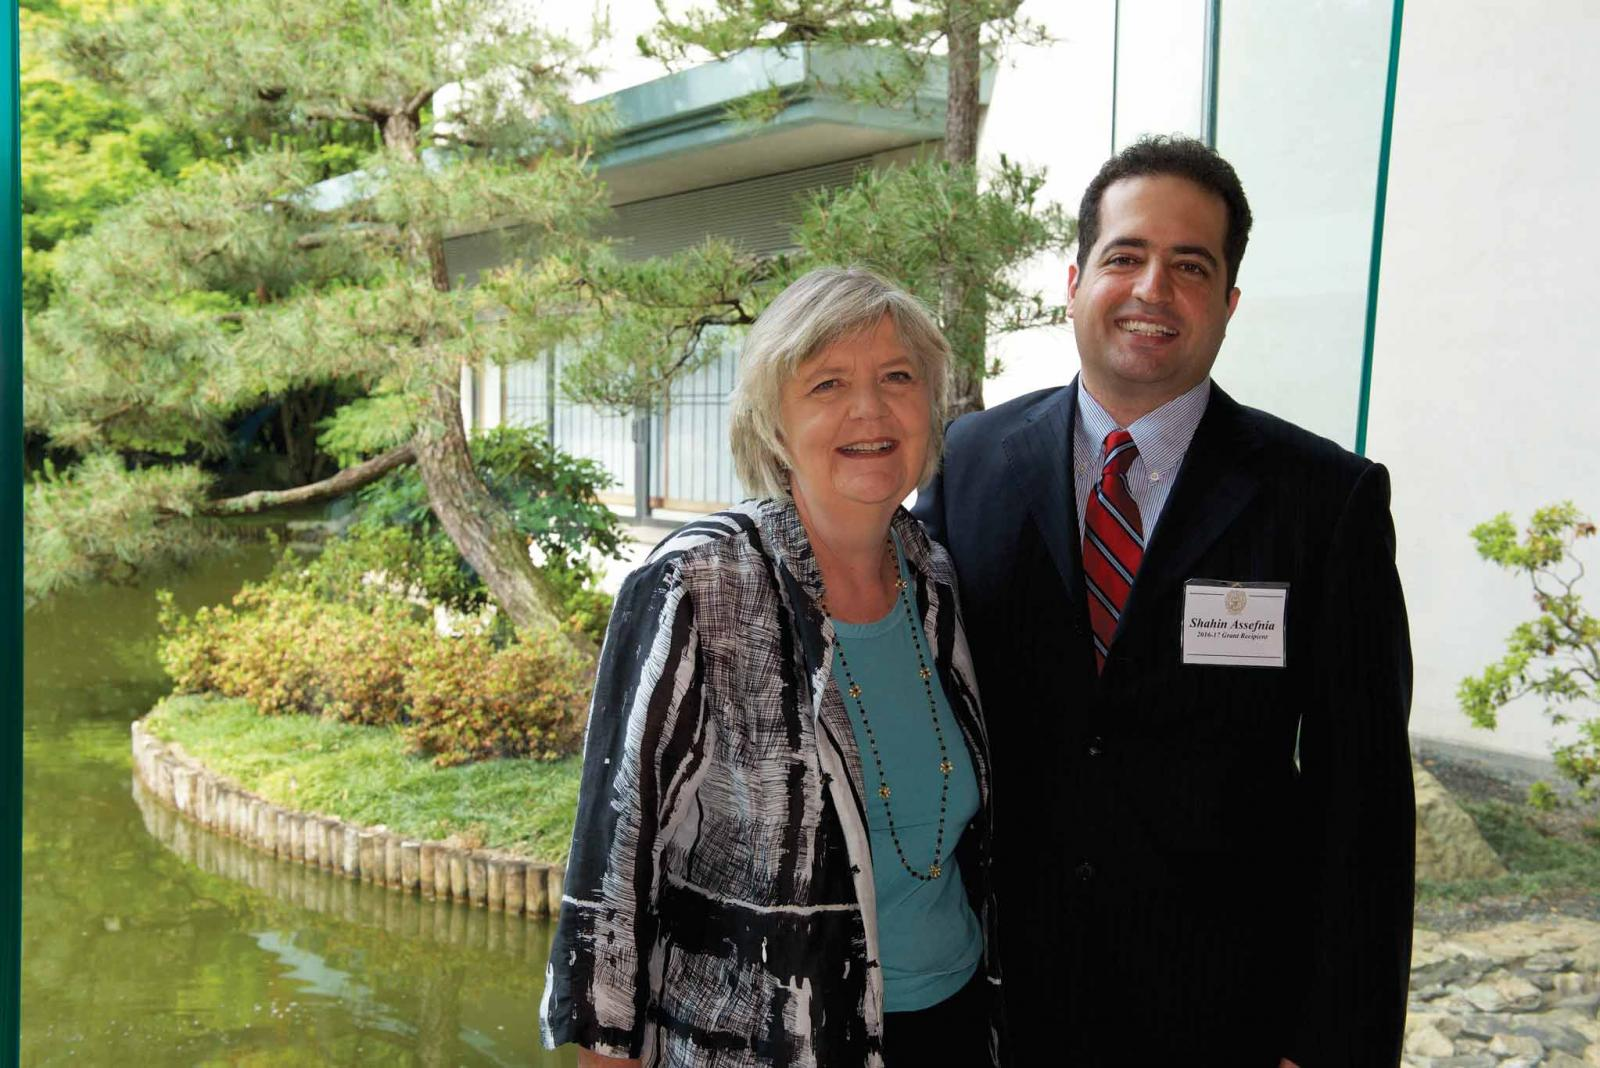 Frances Schafer, partner in Research Donor, with Shahi Assefnia